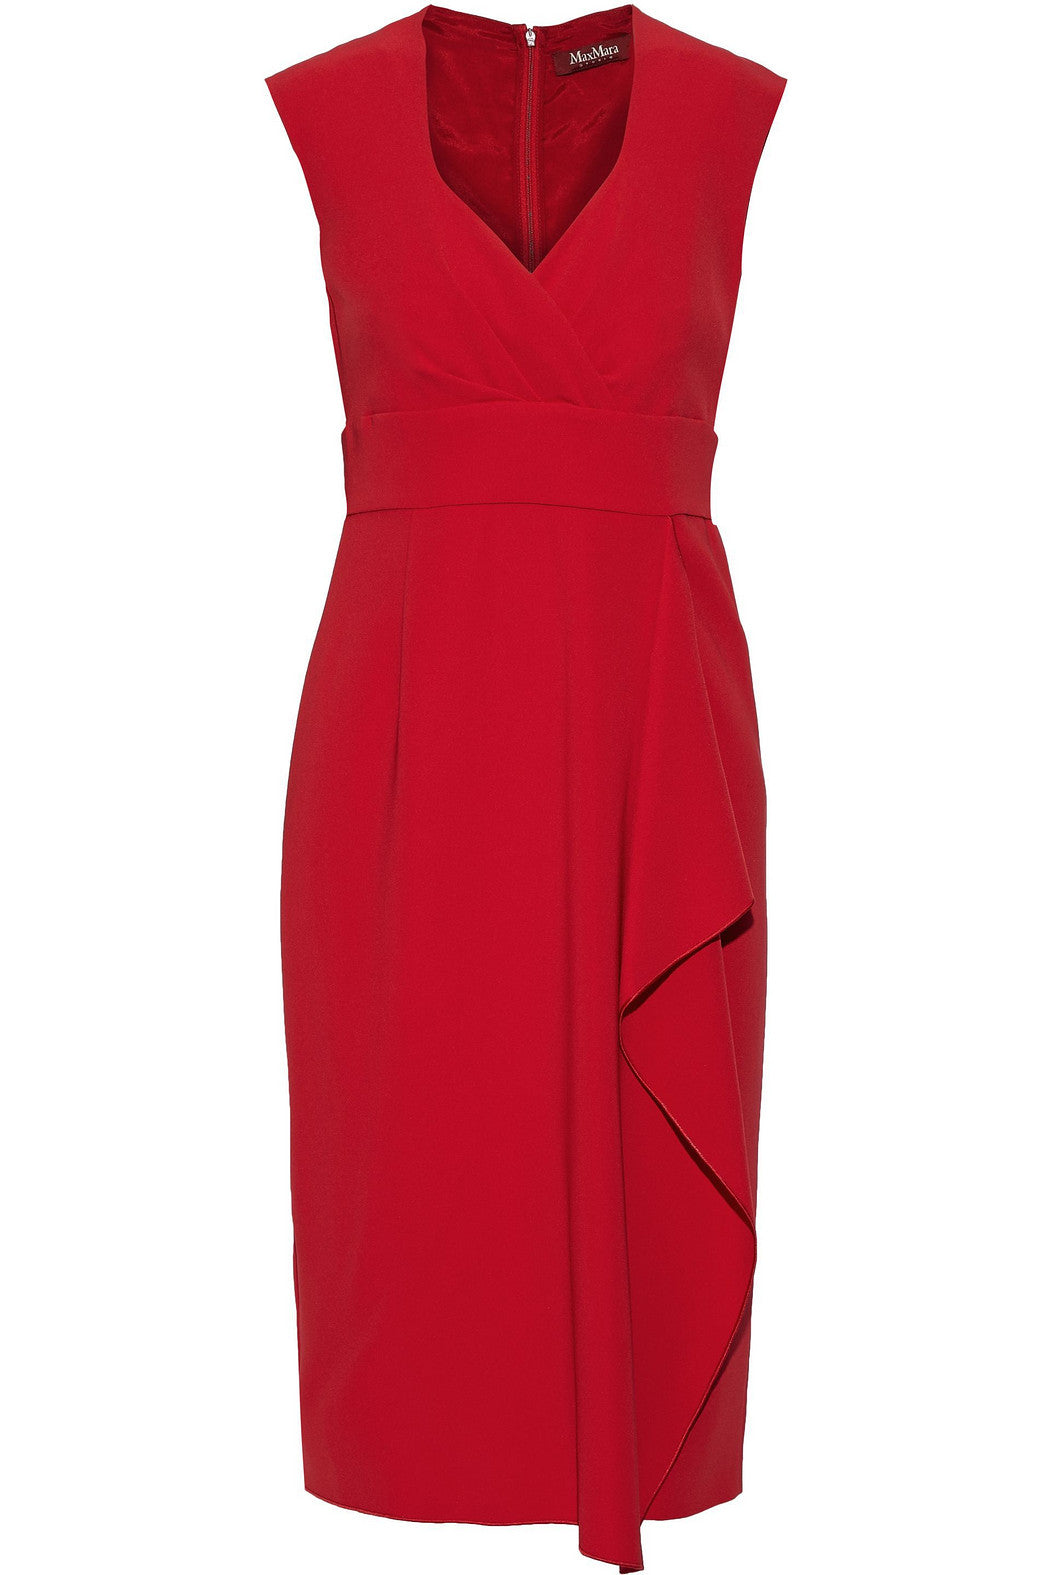 Elvy Red Crepe Dress